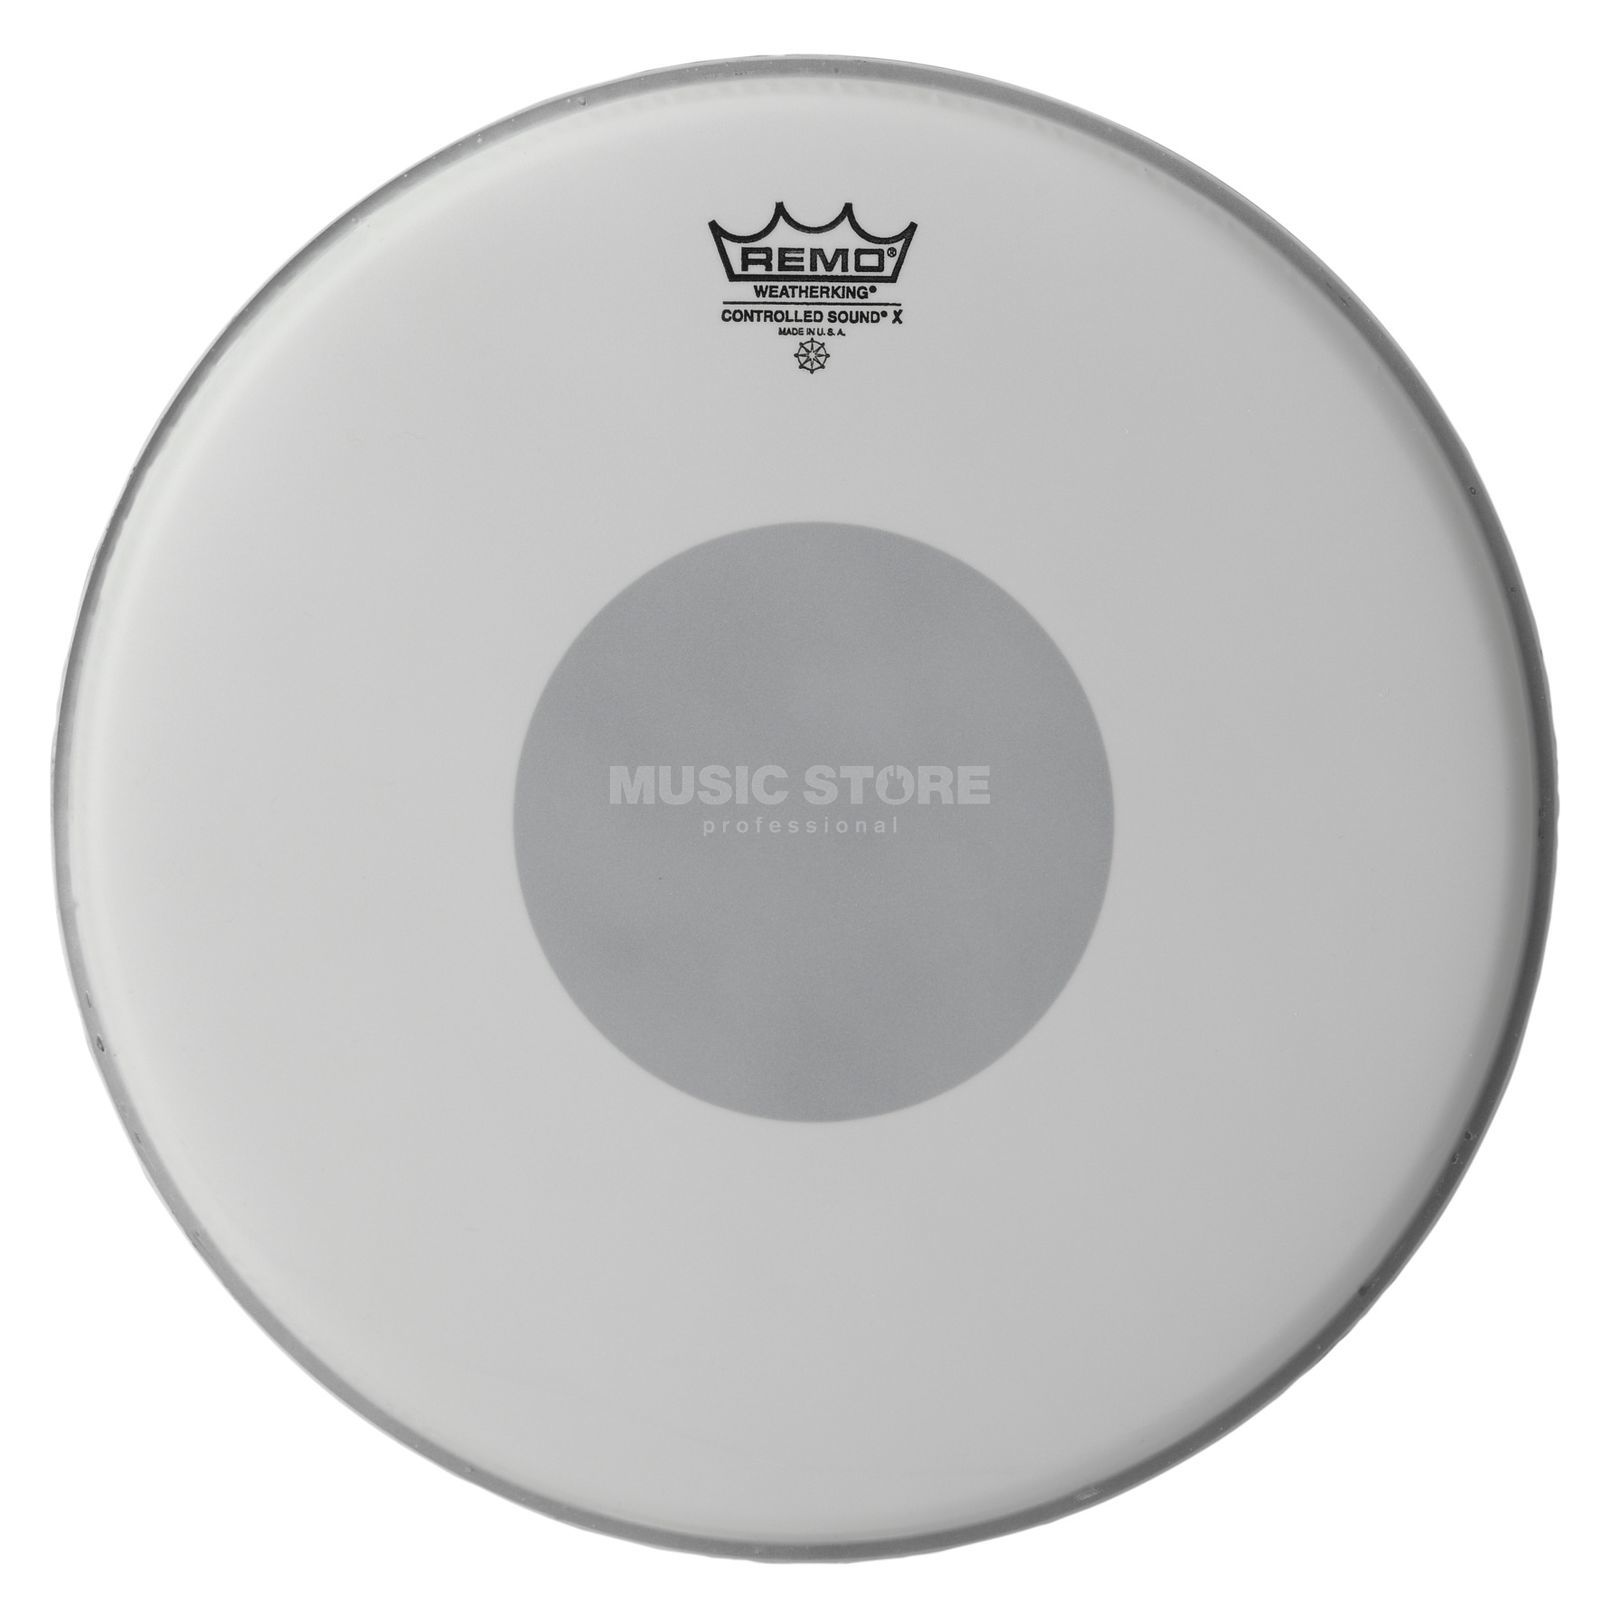 "Remo Controlled Sound X 14"", Black Dot, SnareDrum Batter Product Image"